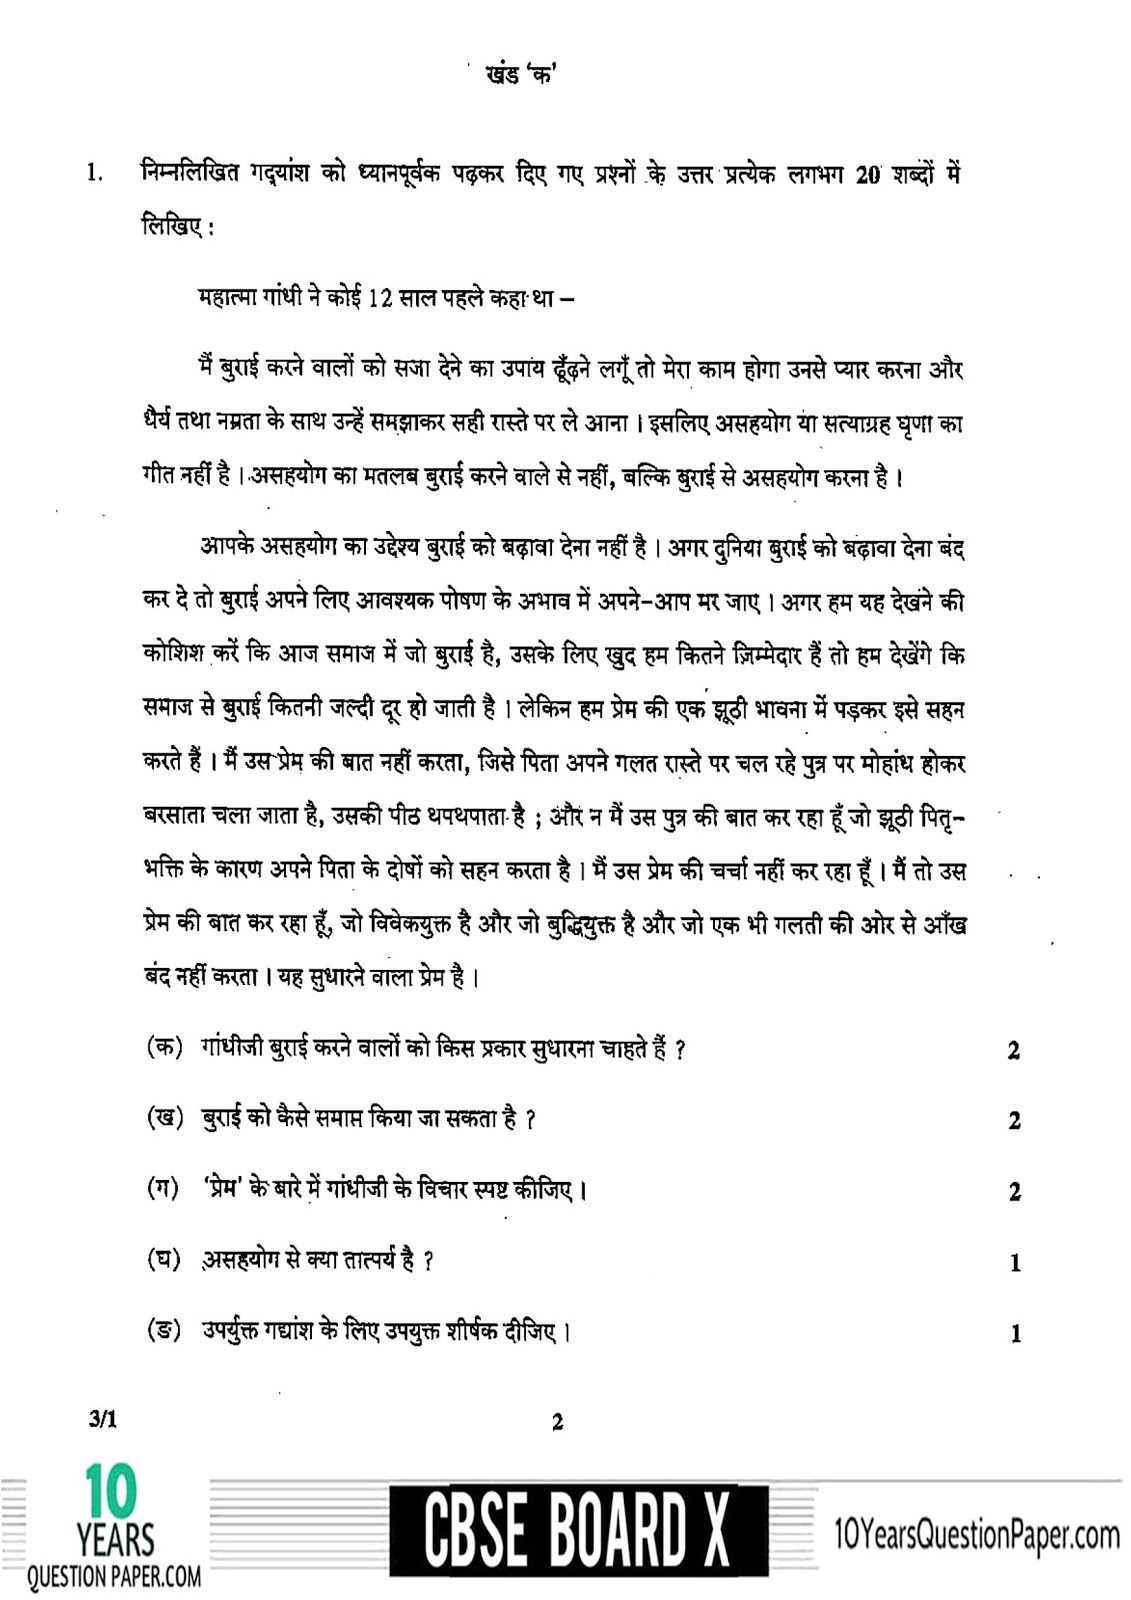 CBSE Board 2018 Hindi Course A Question paper Class 10 Page-02